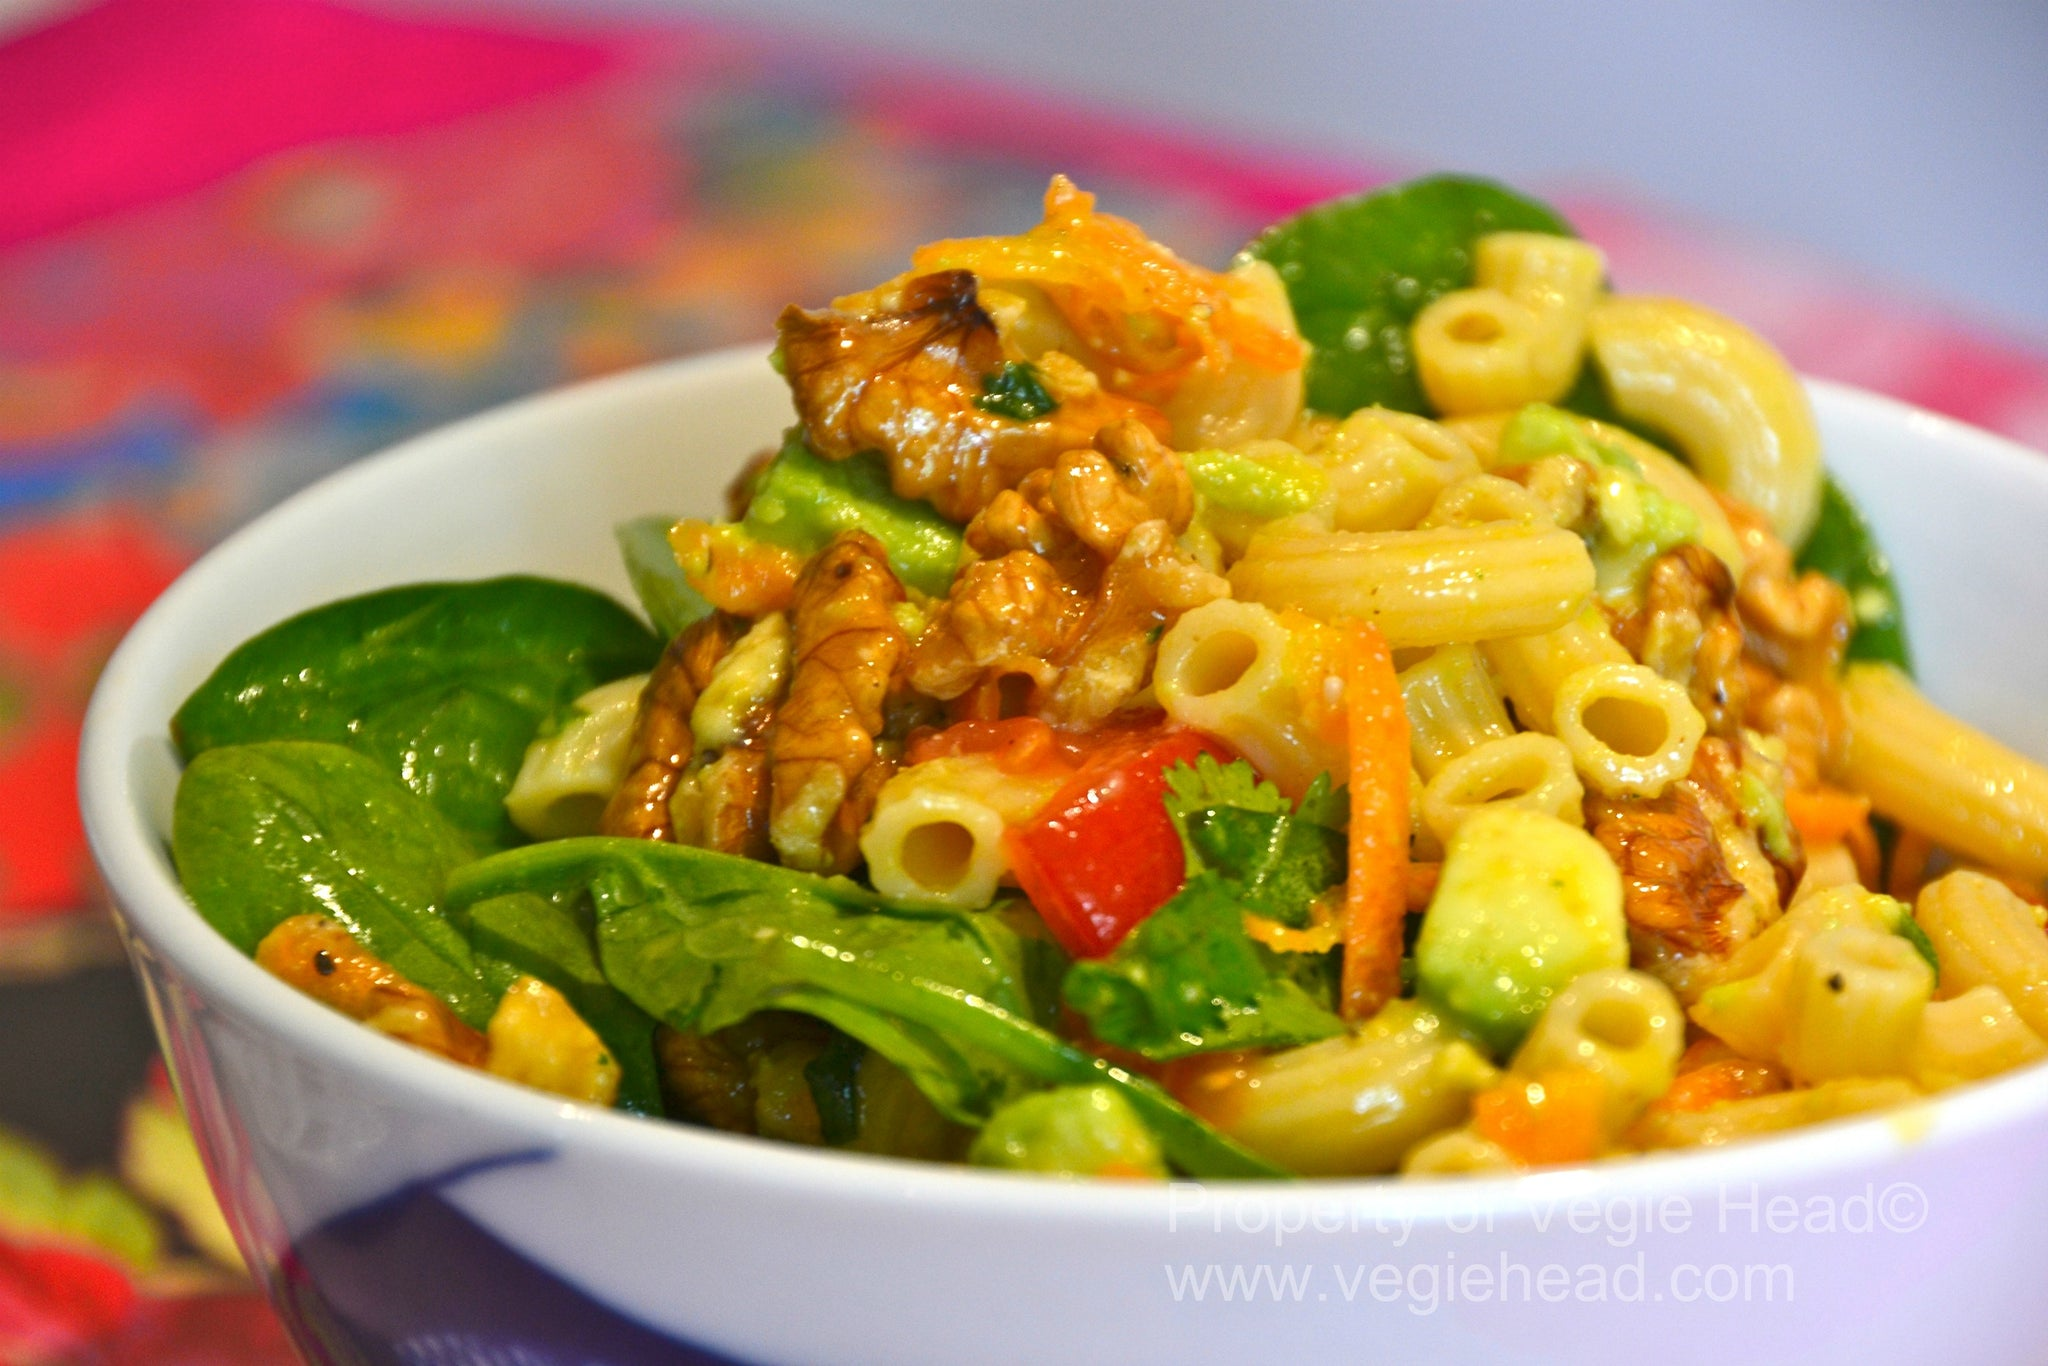 Californian walnut pasta salad…